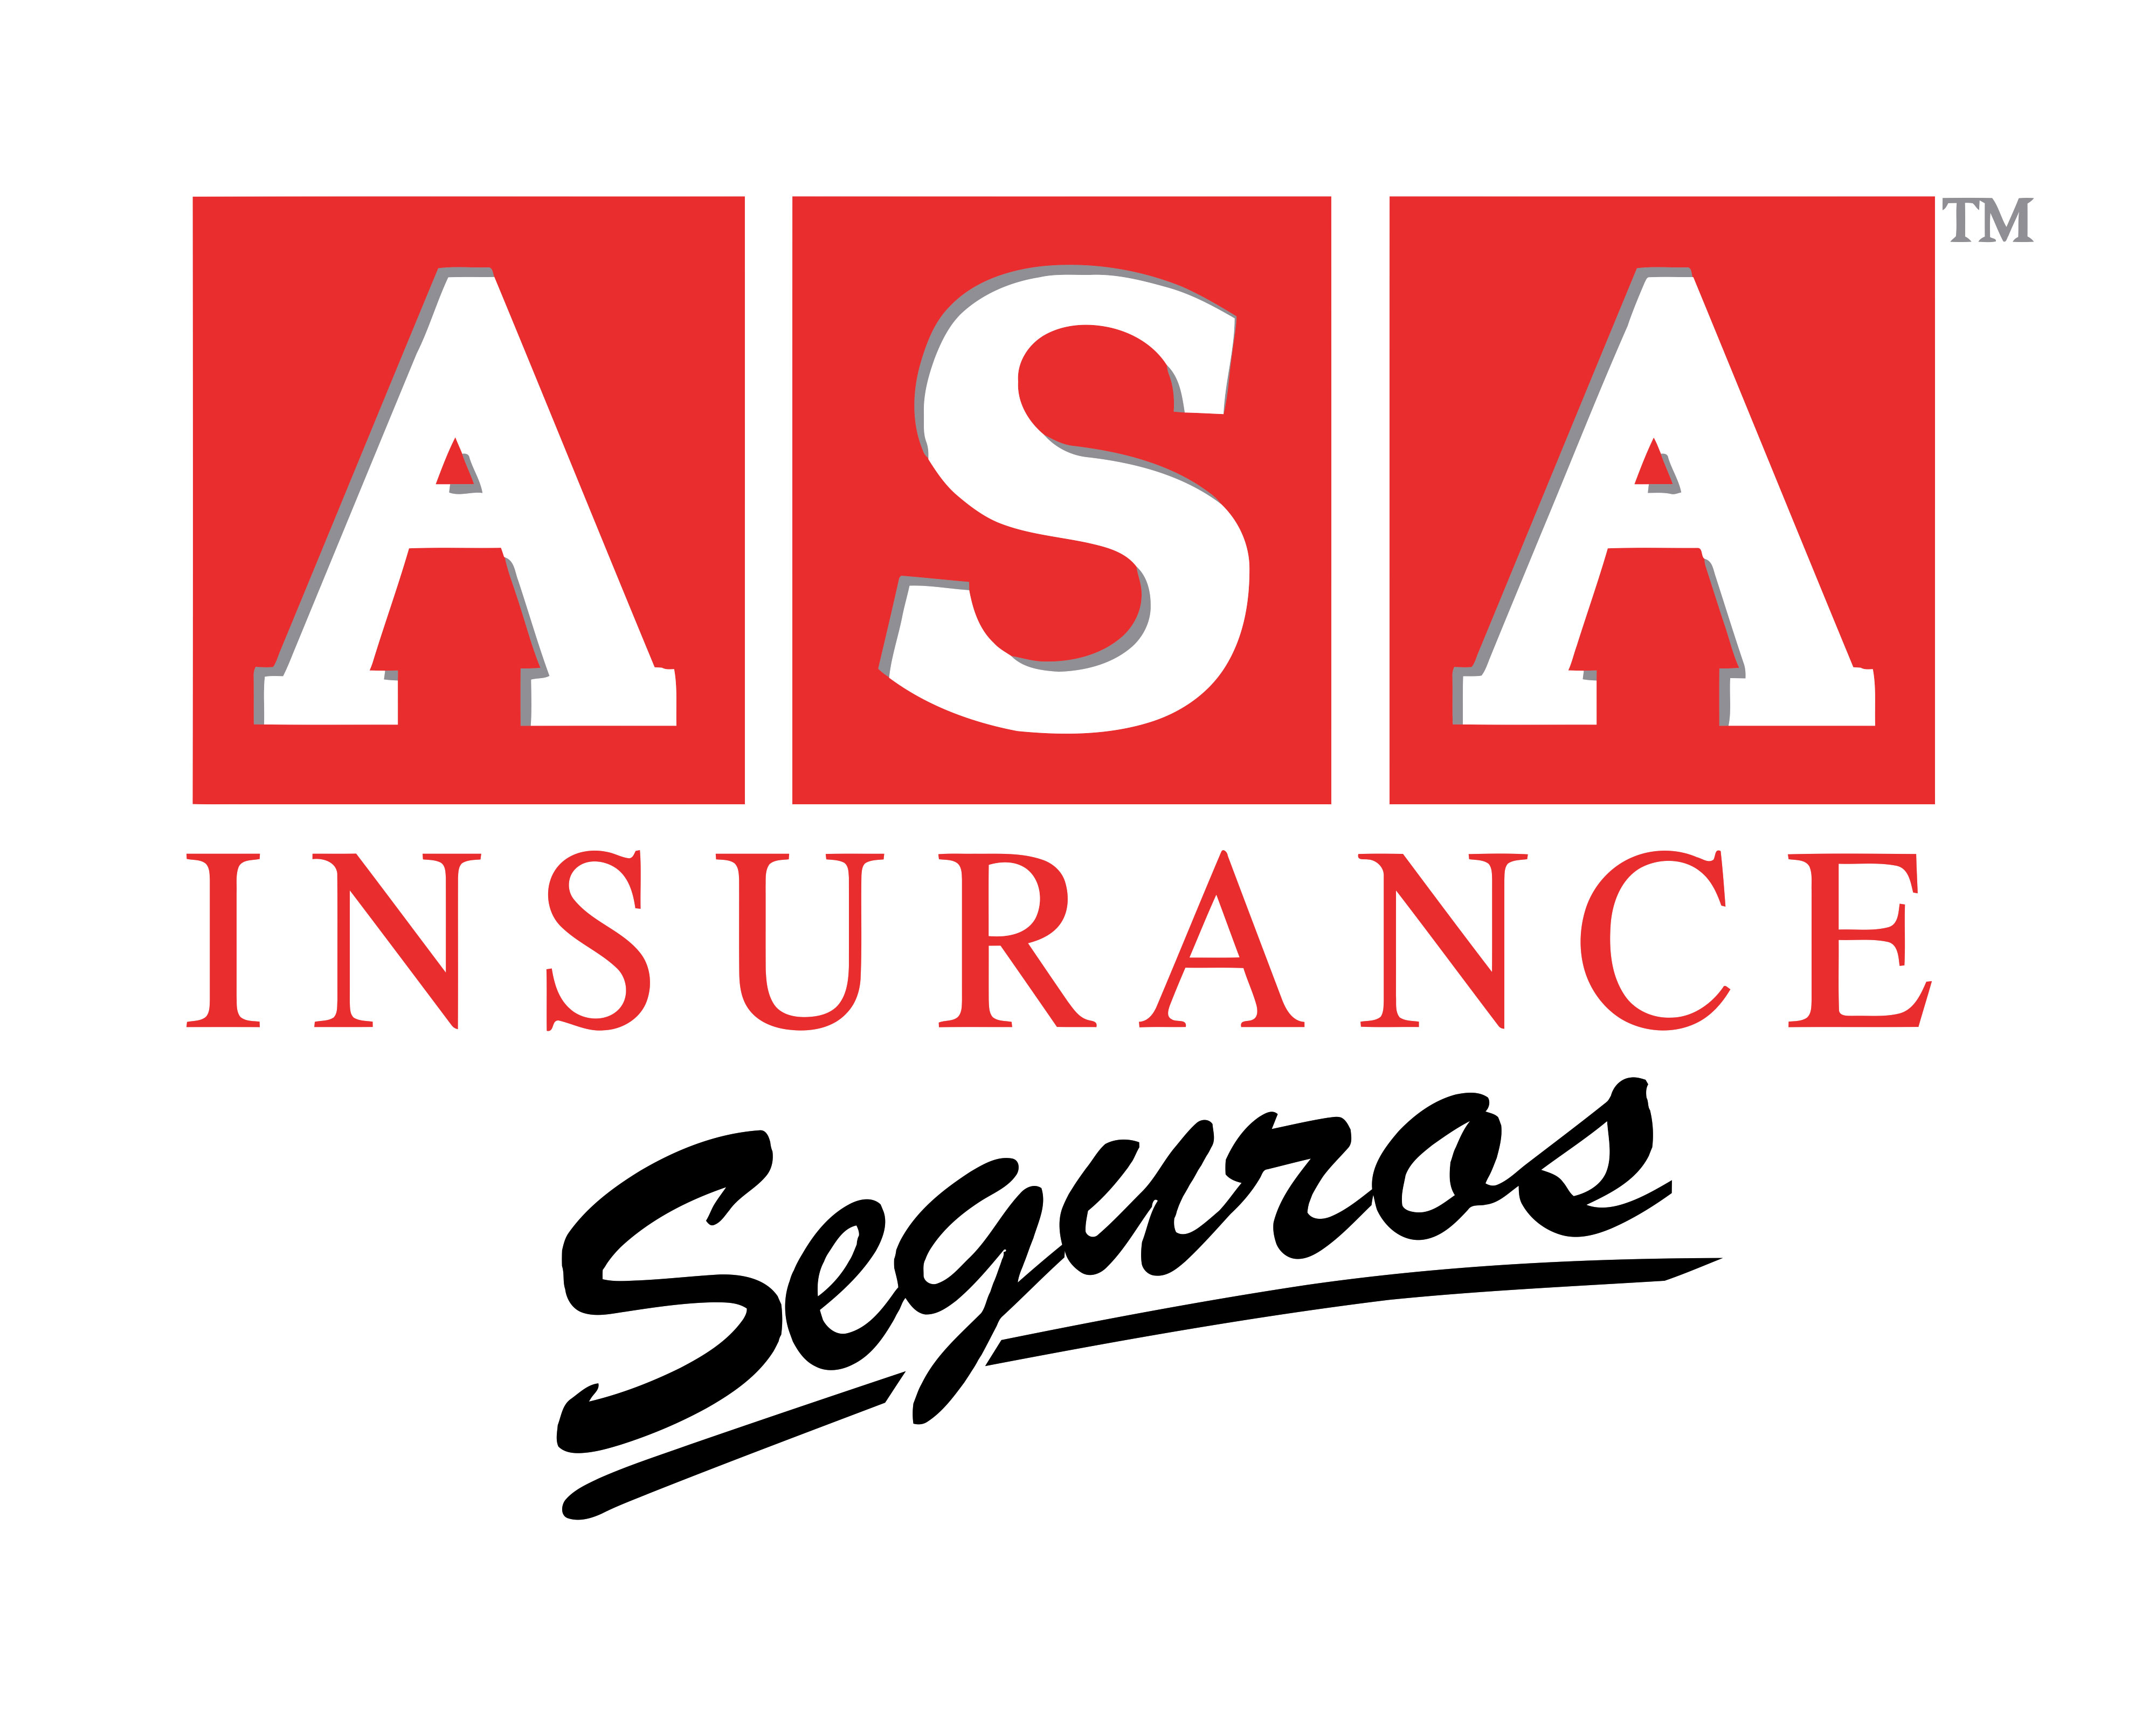 Auto Insurance in The Salt Lake City Area